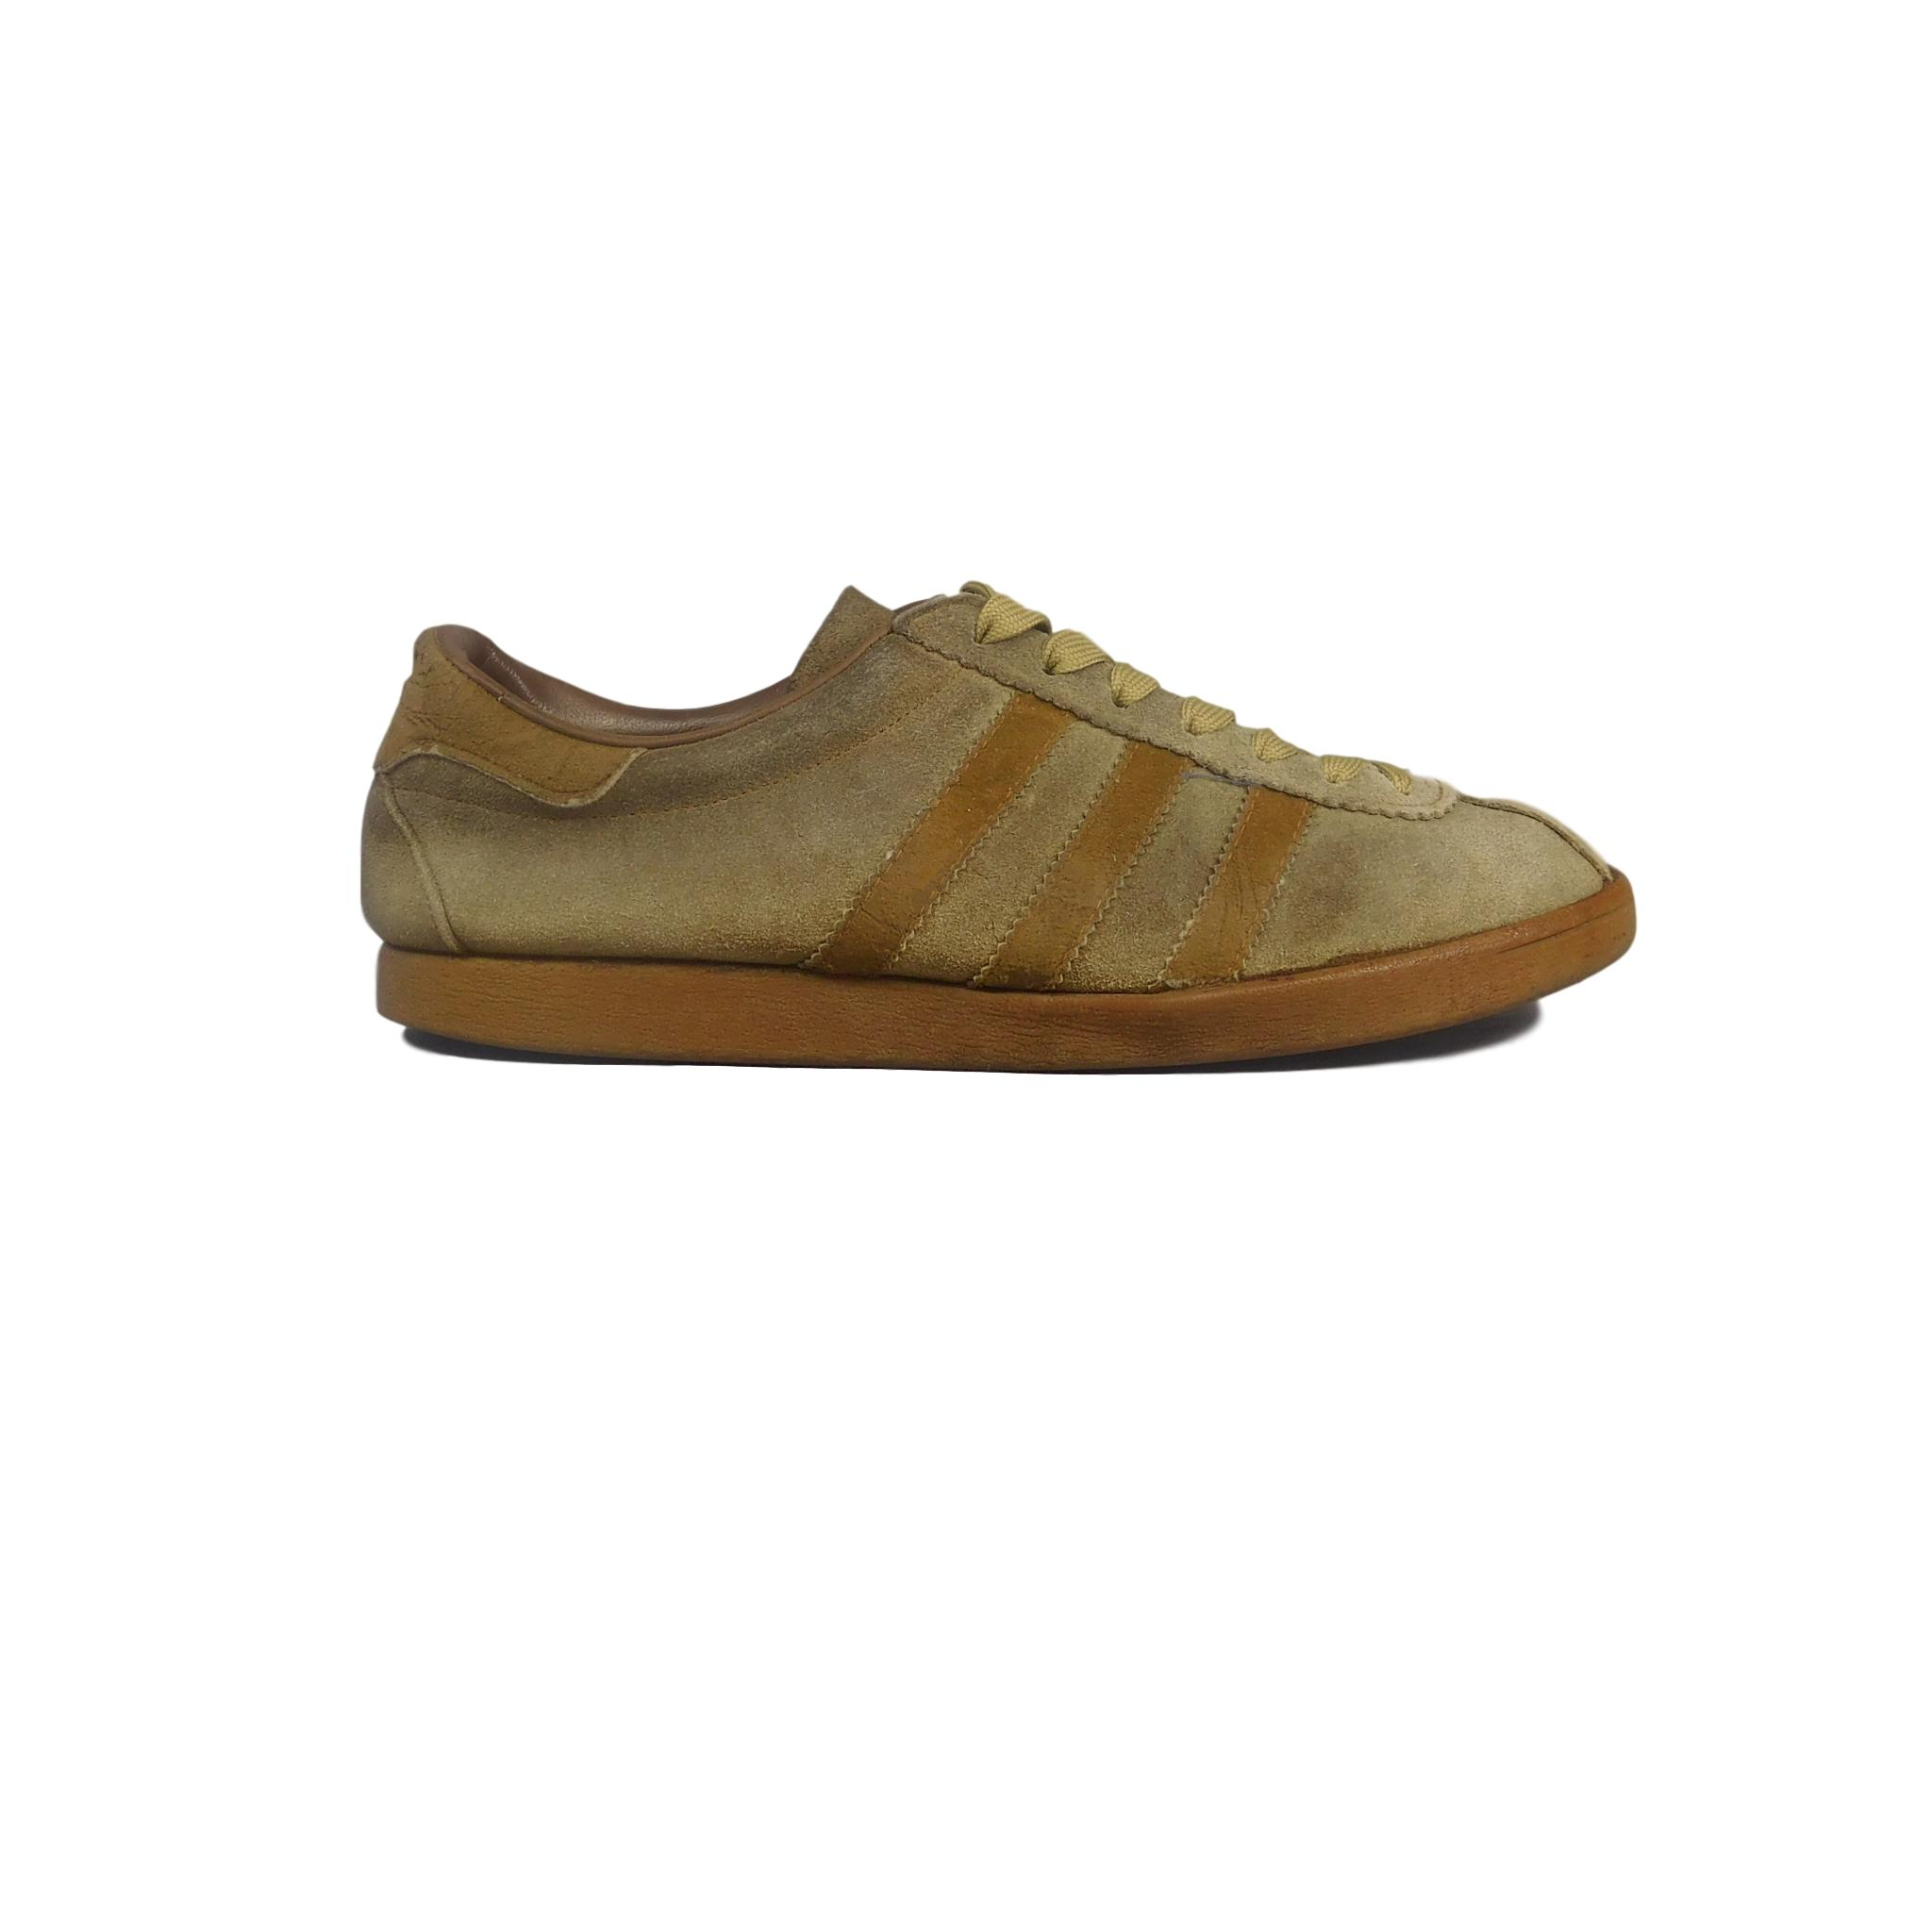 dfdd46d27e3af adidas Tobacco - Made in France